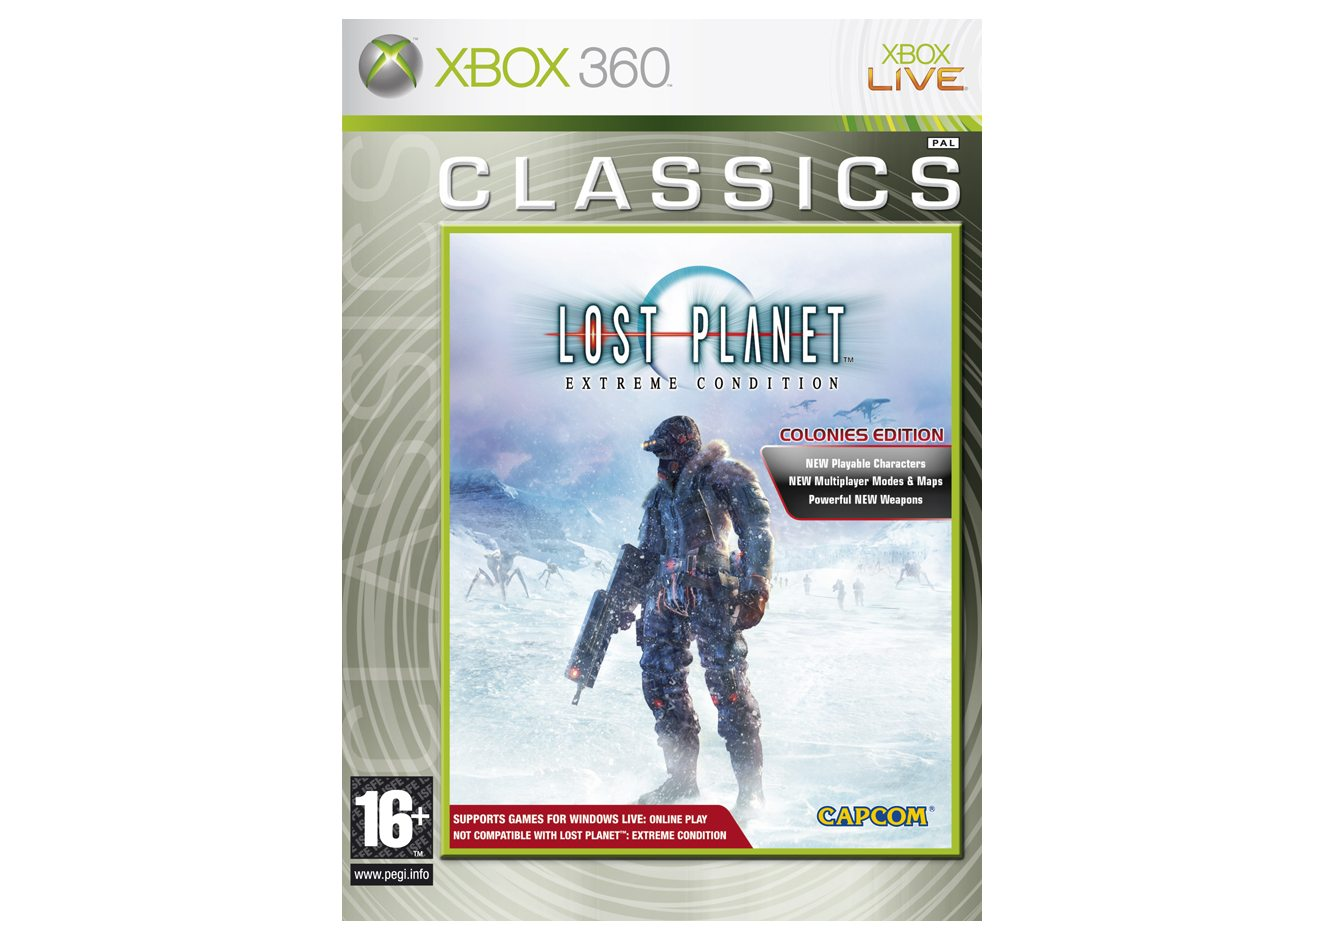 Xbox 360 Lost Planet Extreme Condition - Colonies Edition (Classics) Xbox 360